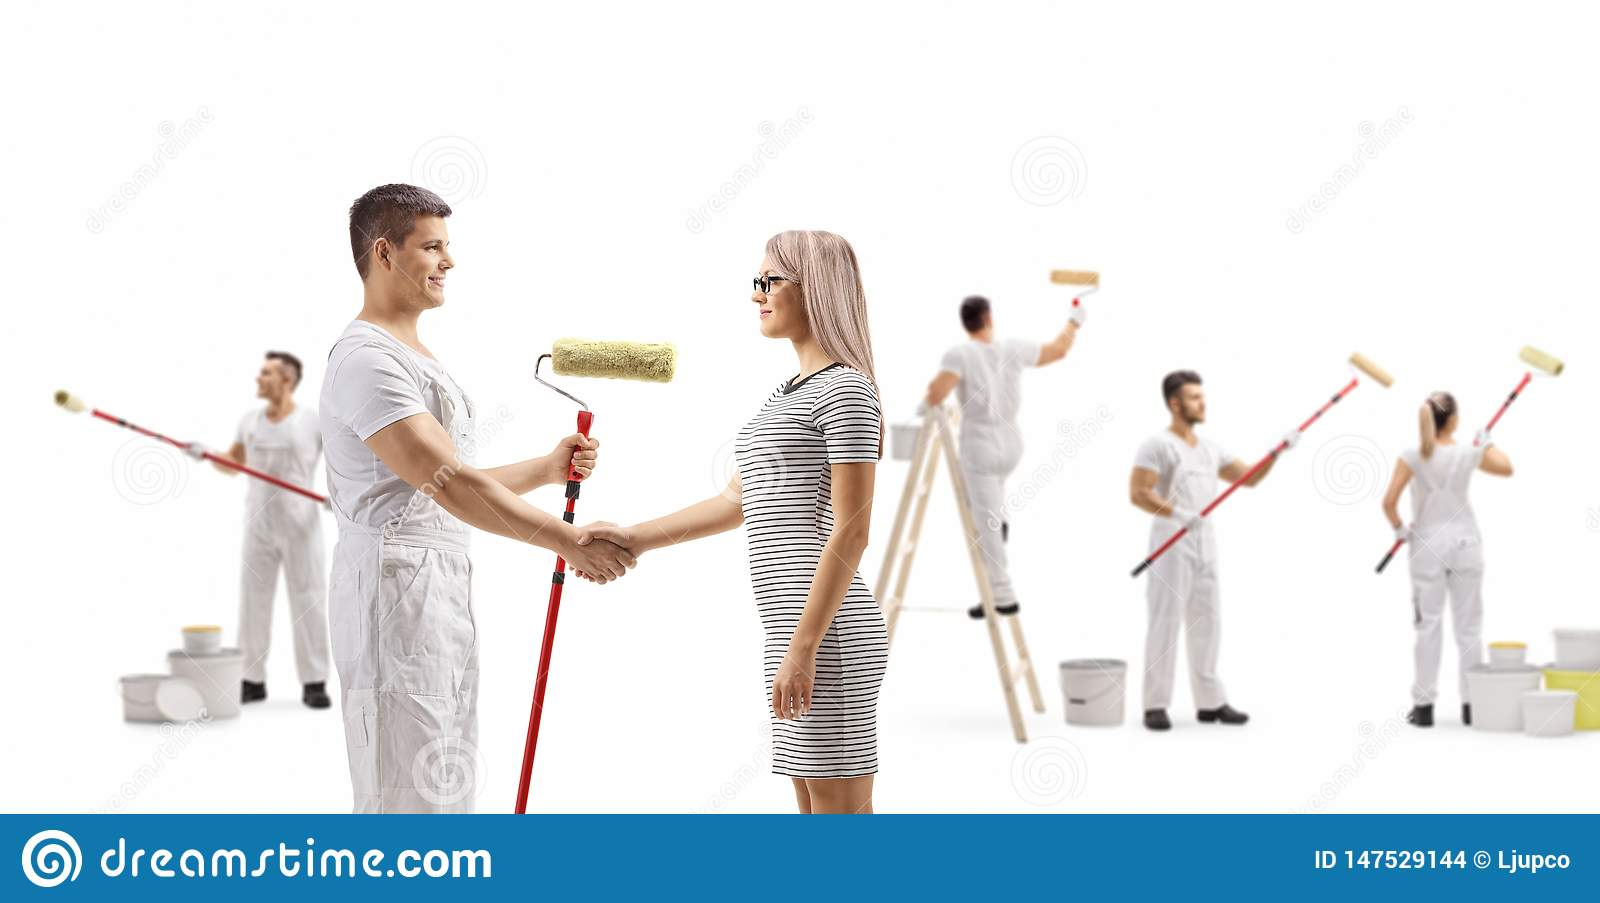 Male painter shaking hands with a young woman and workers painting wall